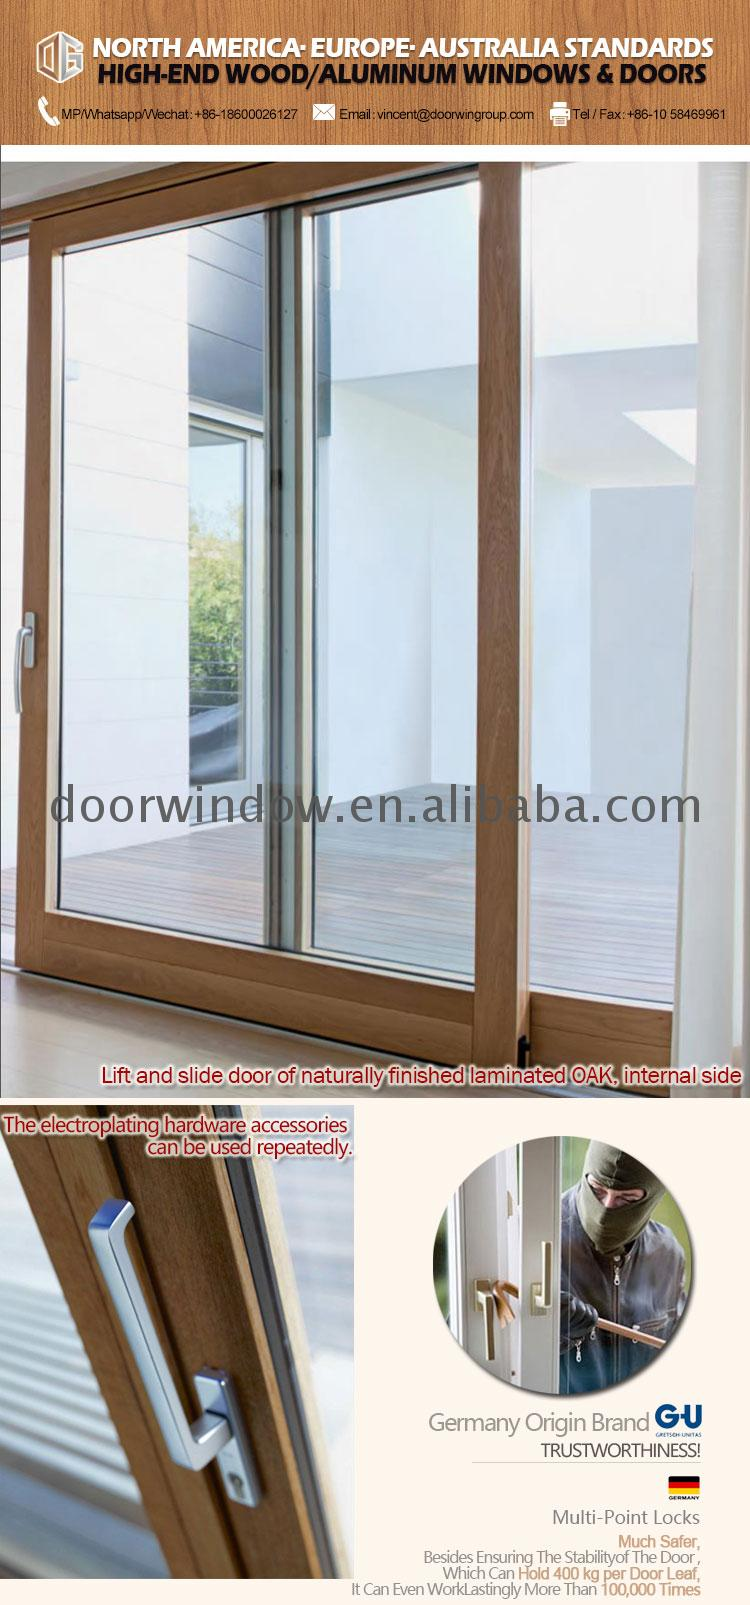 Best Quality sliding doors dallas central coast canada